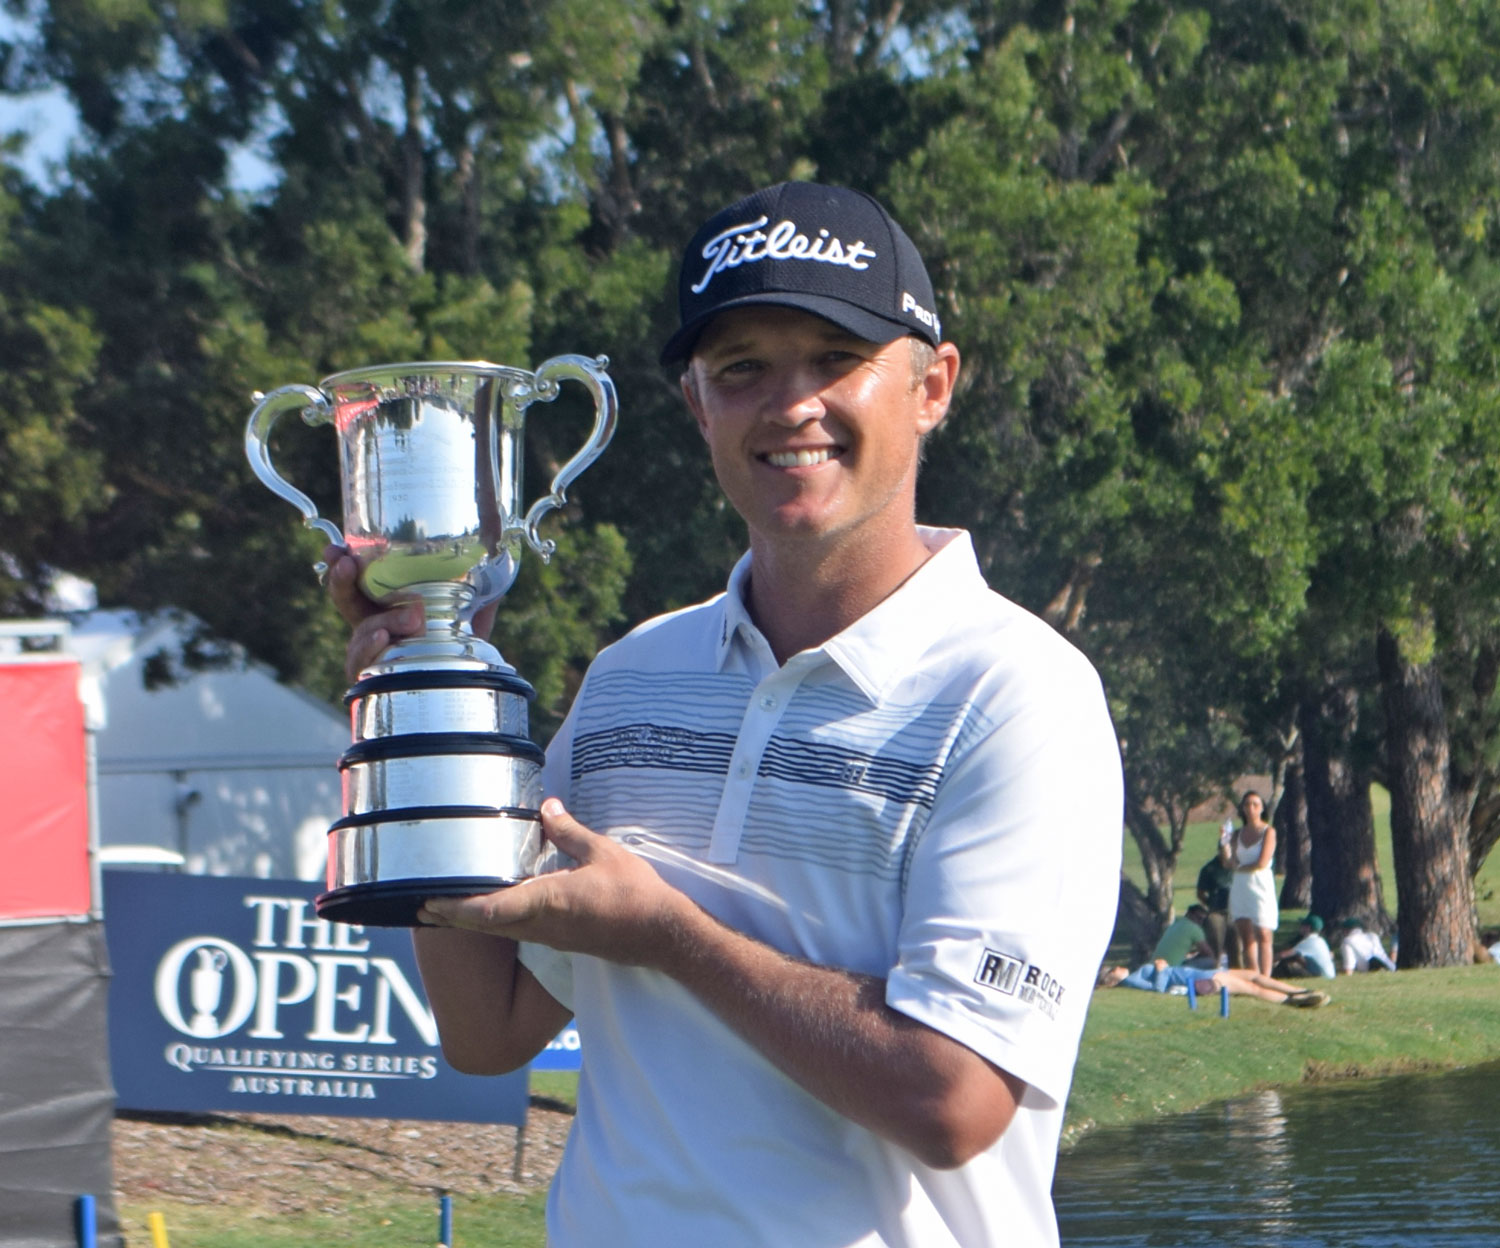 Matthew-Jones-Aust-Open-trophy-#1